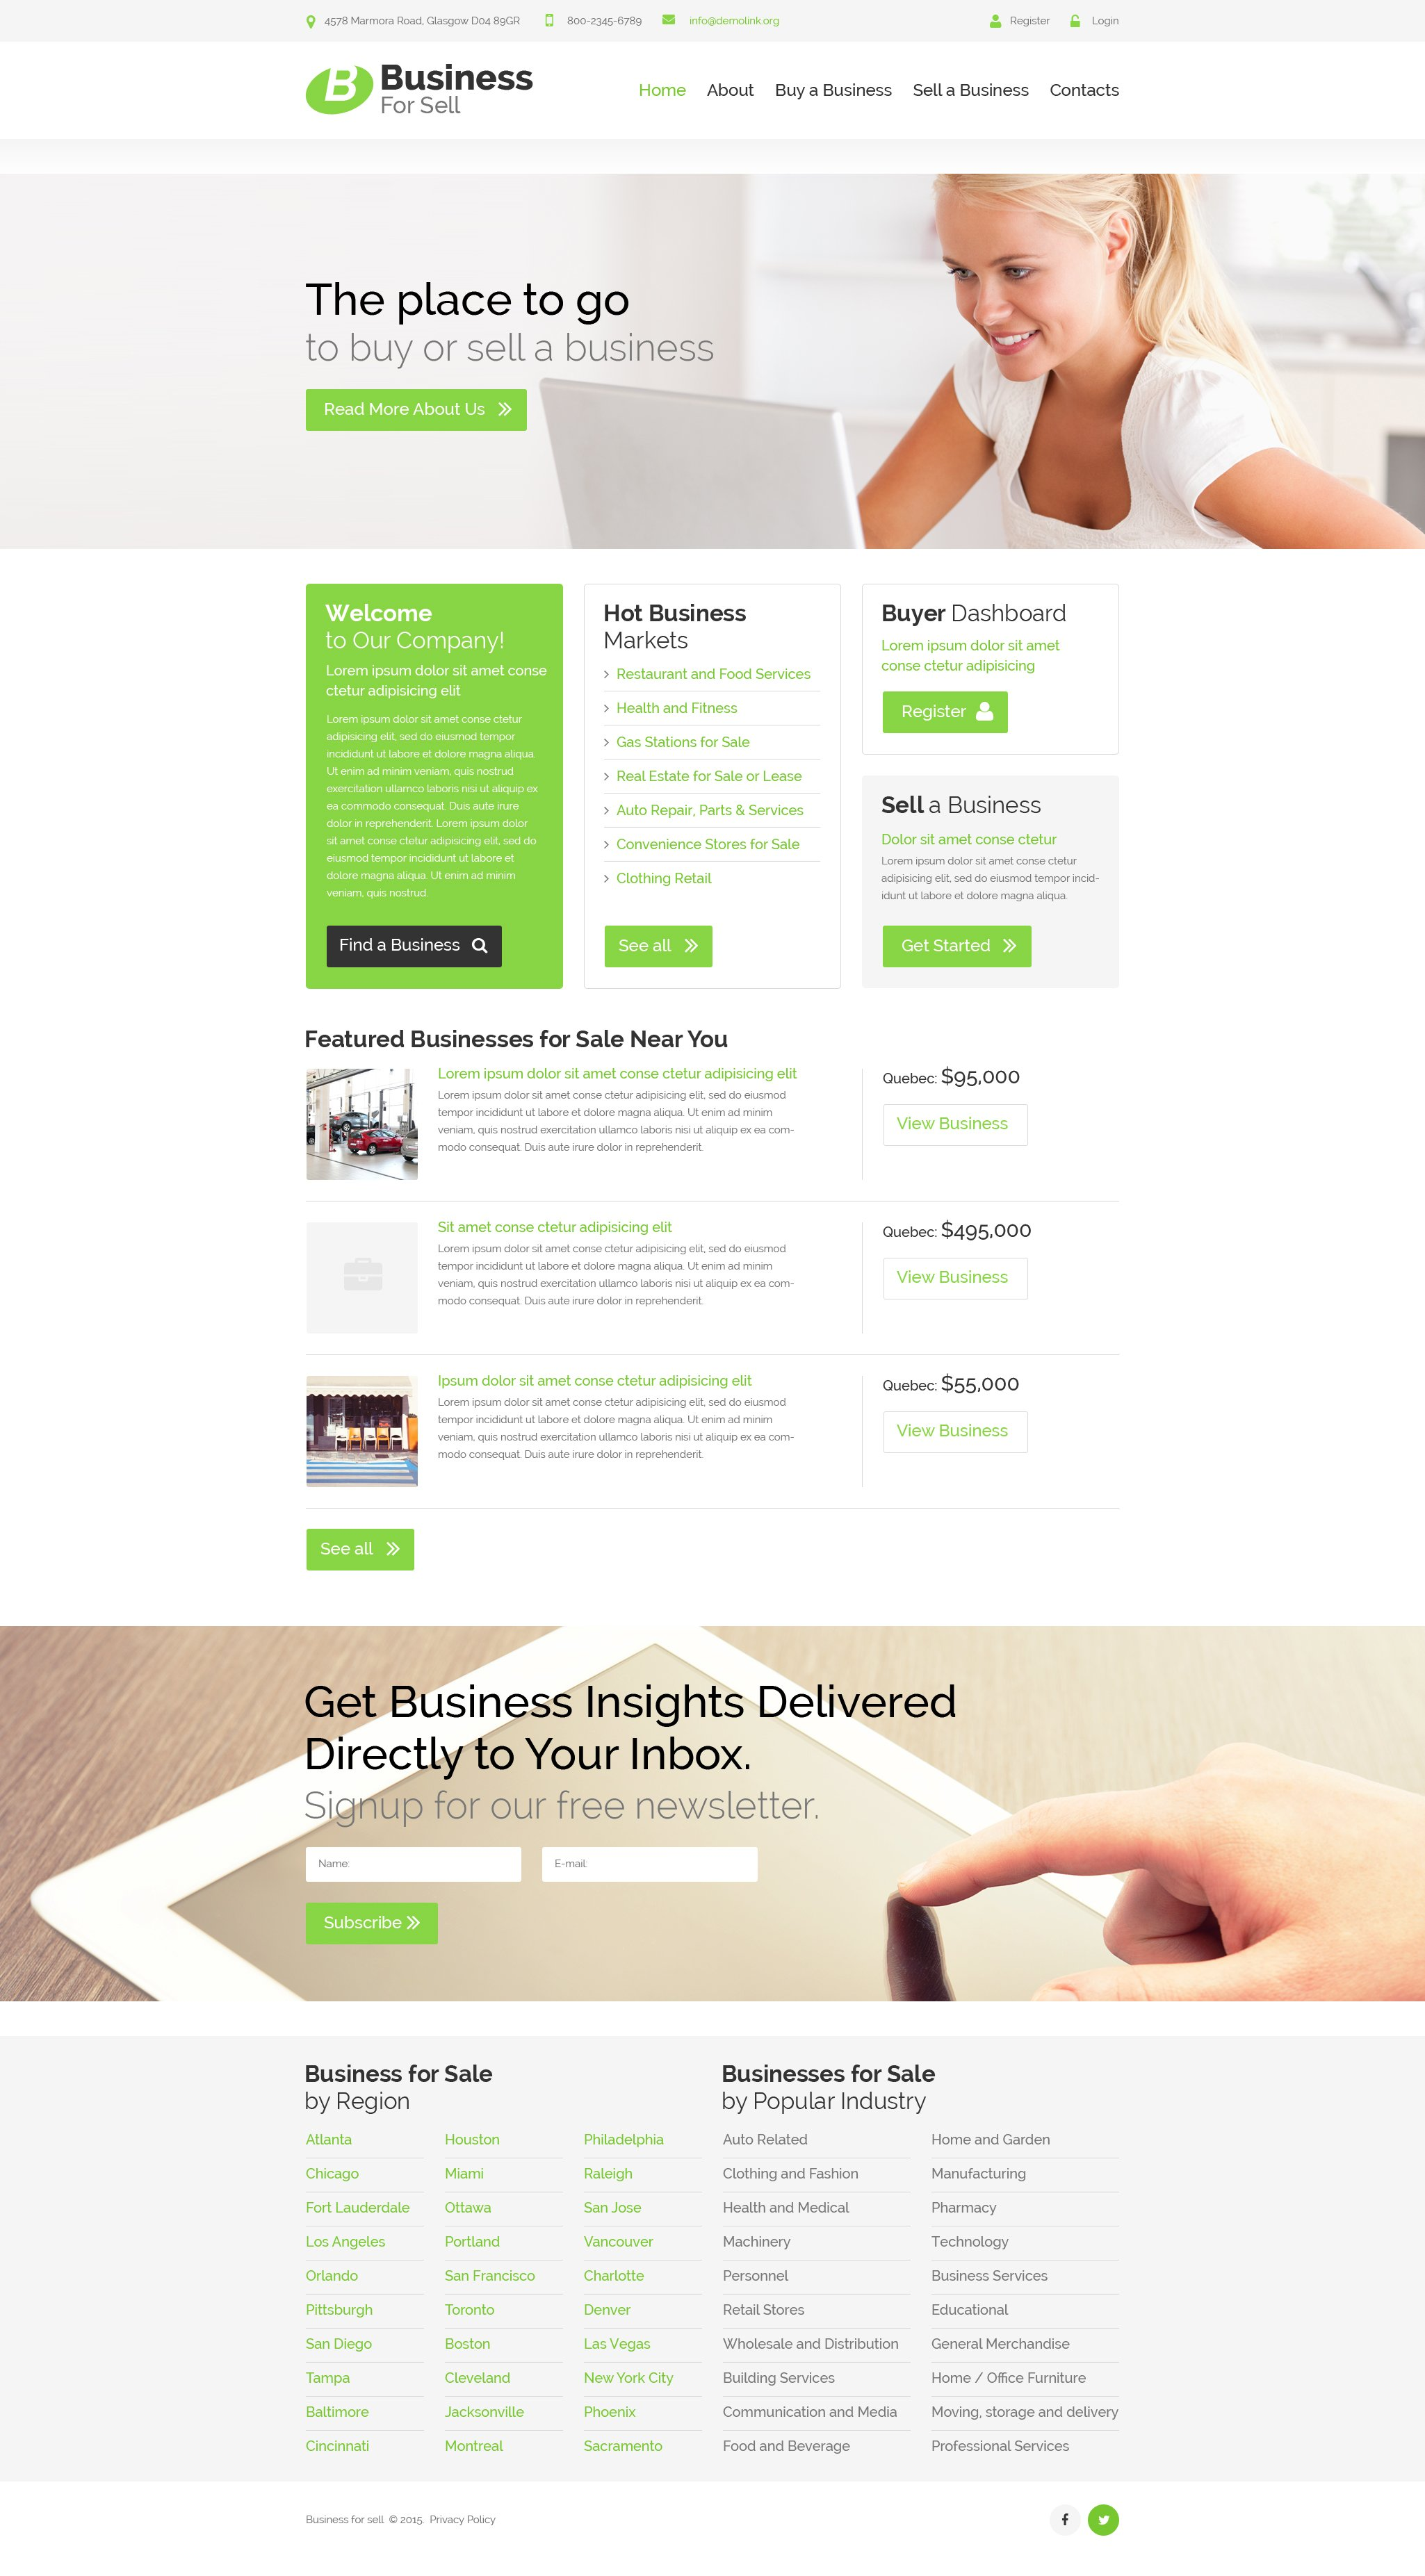 Business for sell website template 52717 business for sell website template fbccfo Gallery